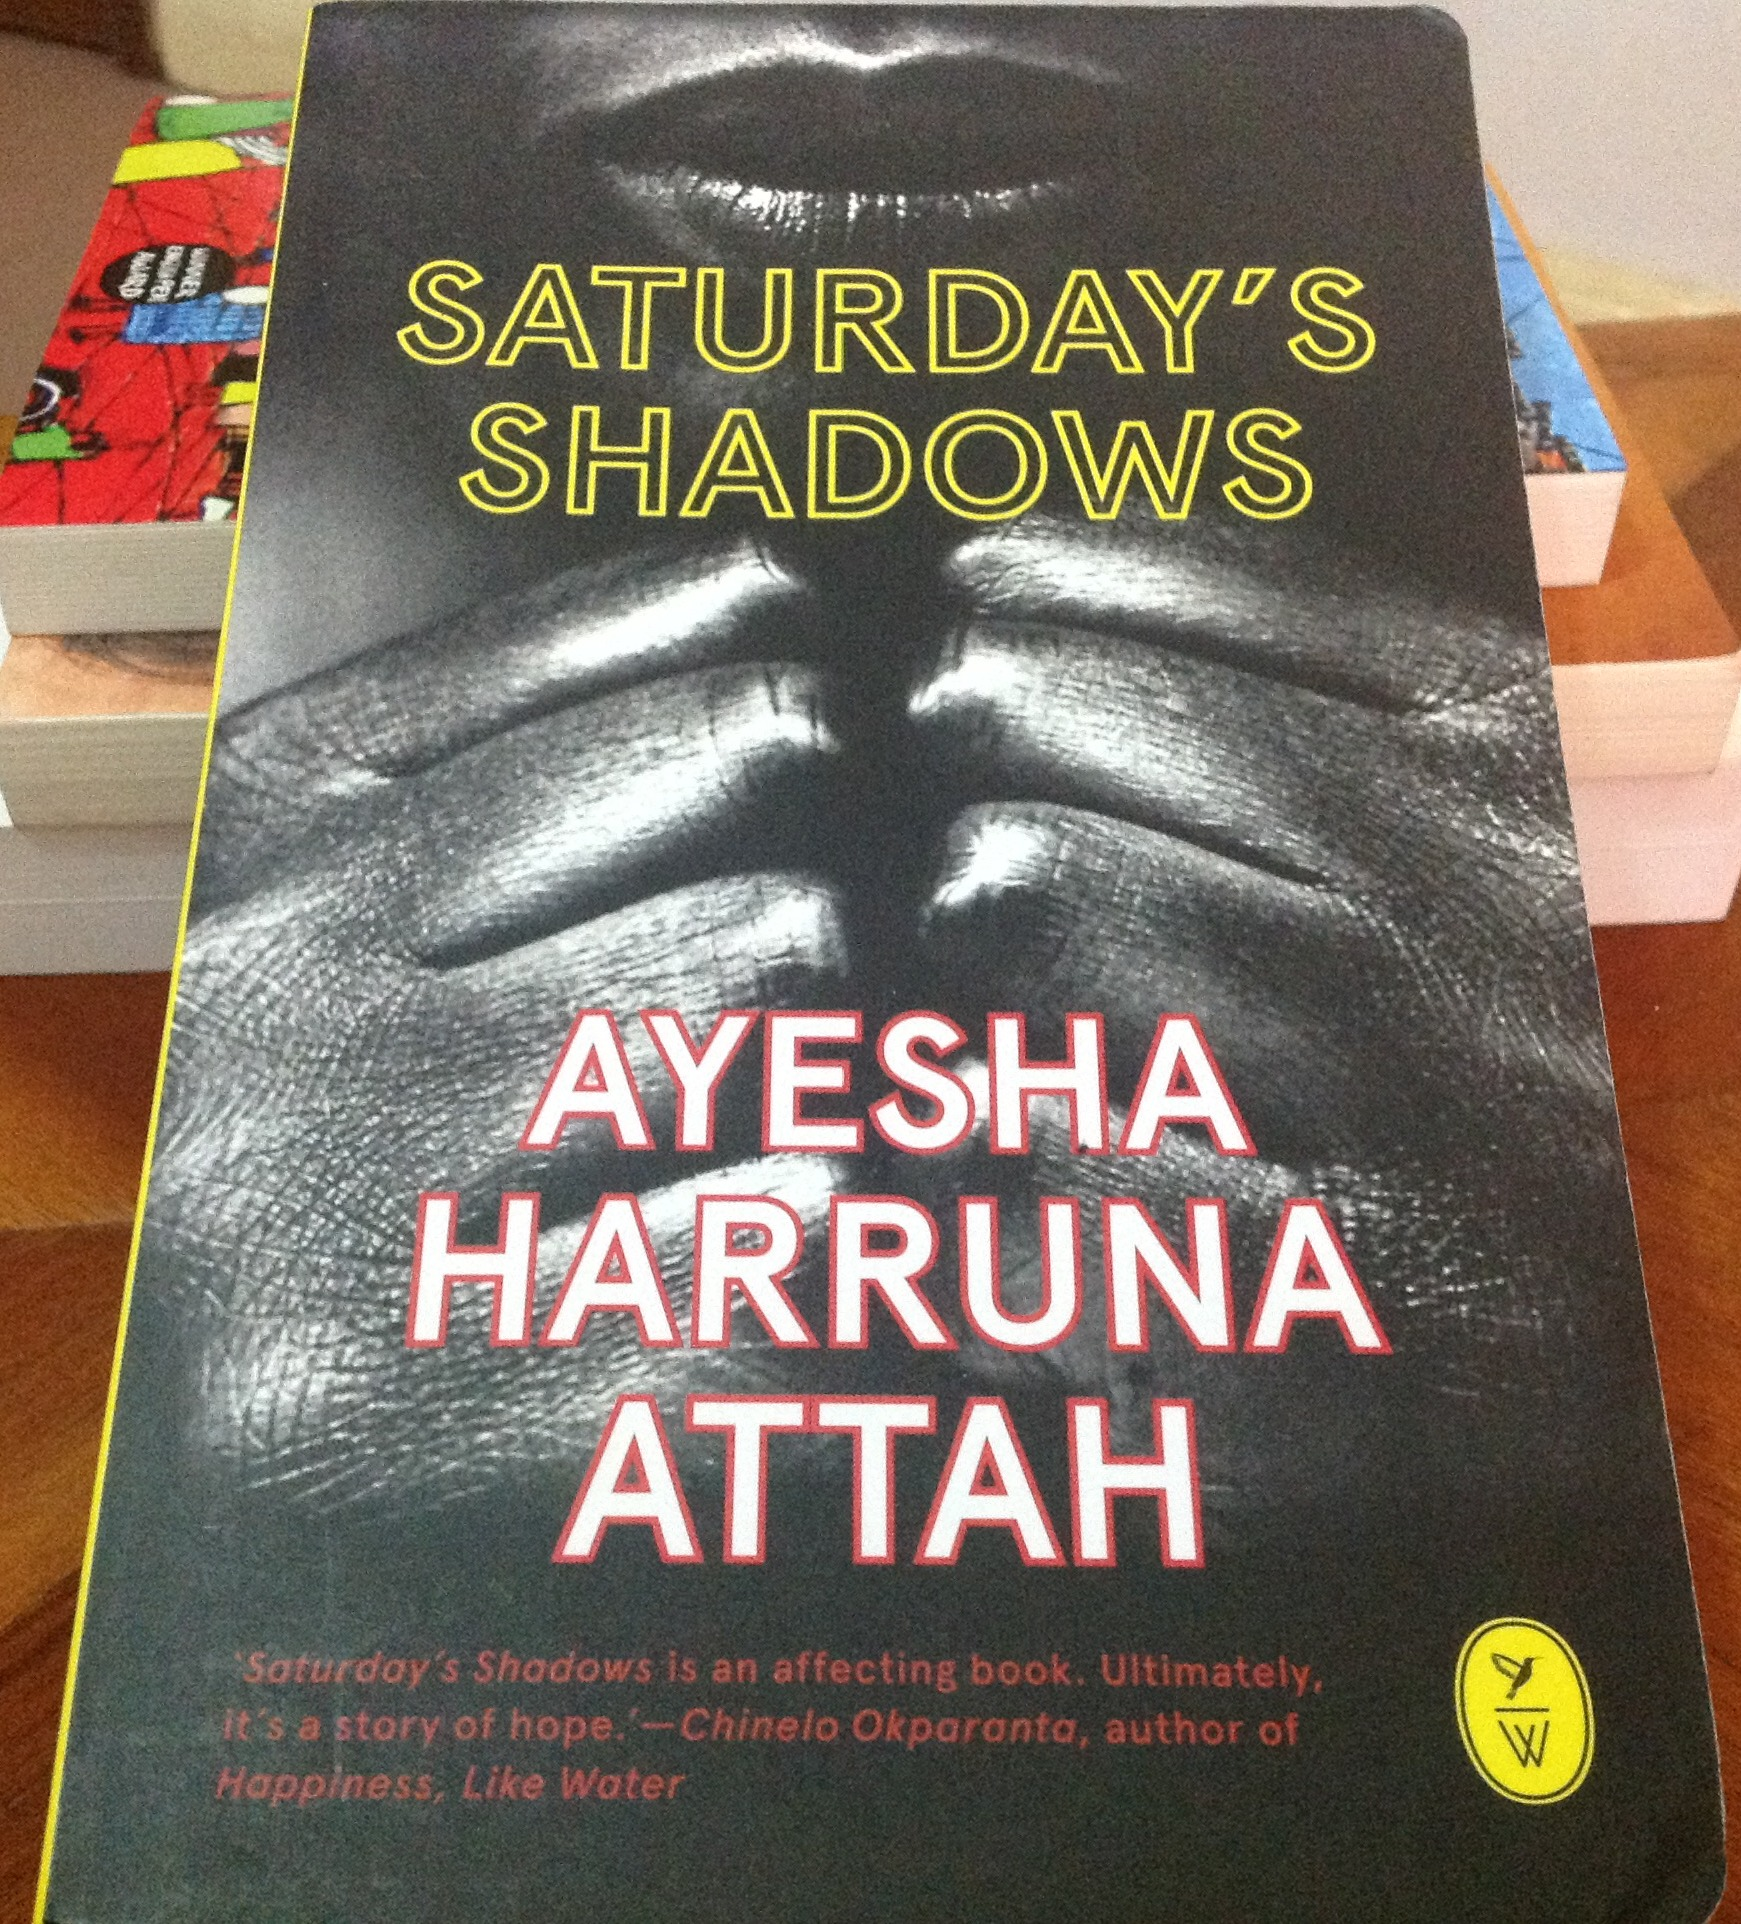 Image result for saturdays shadows ayesha